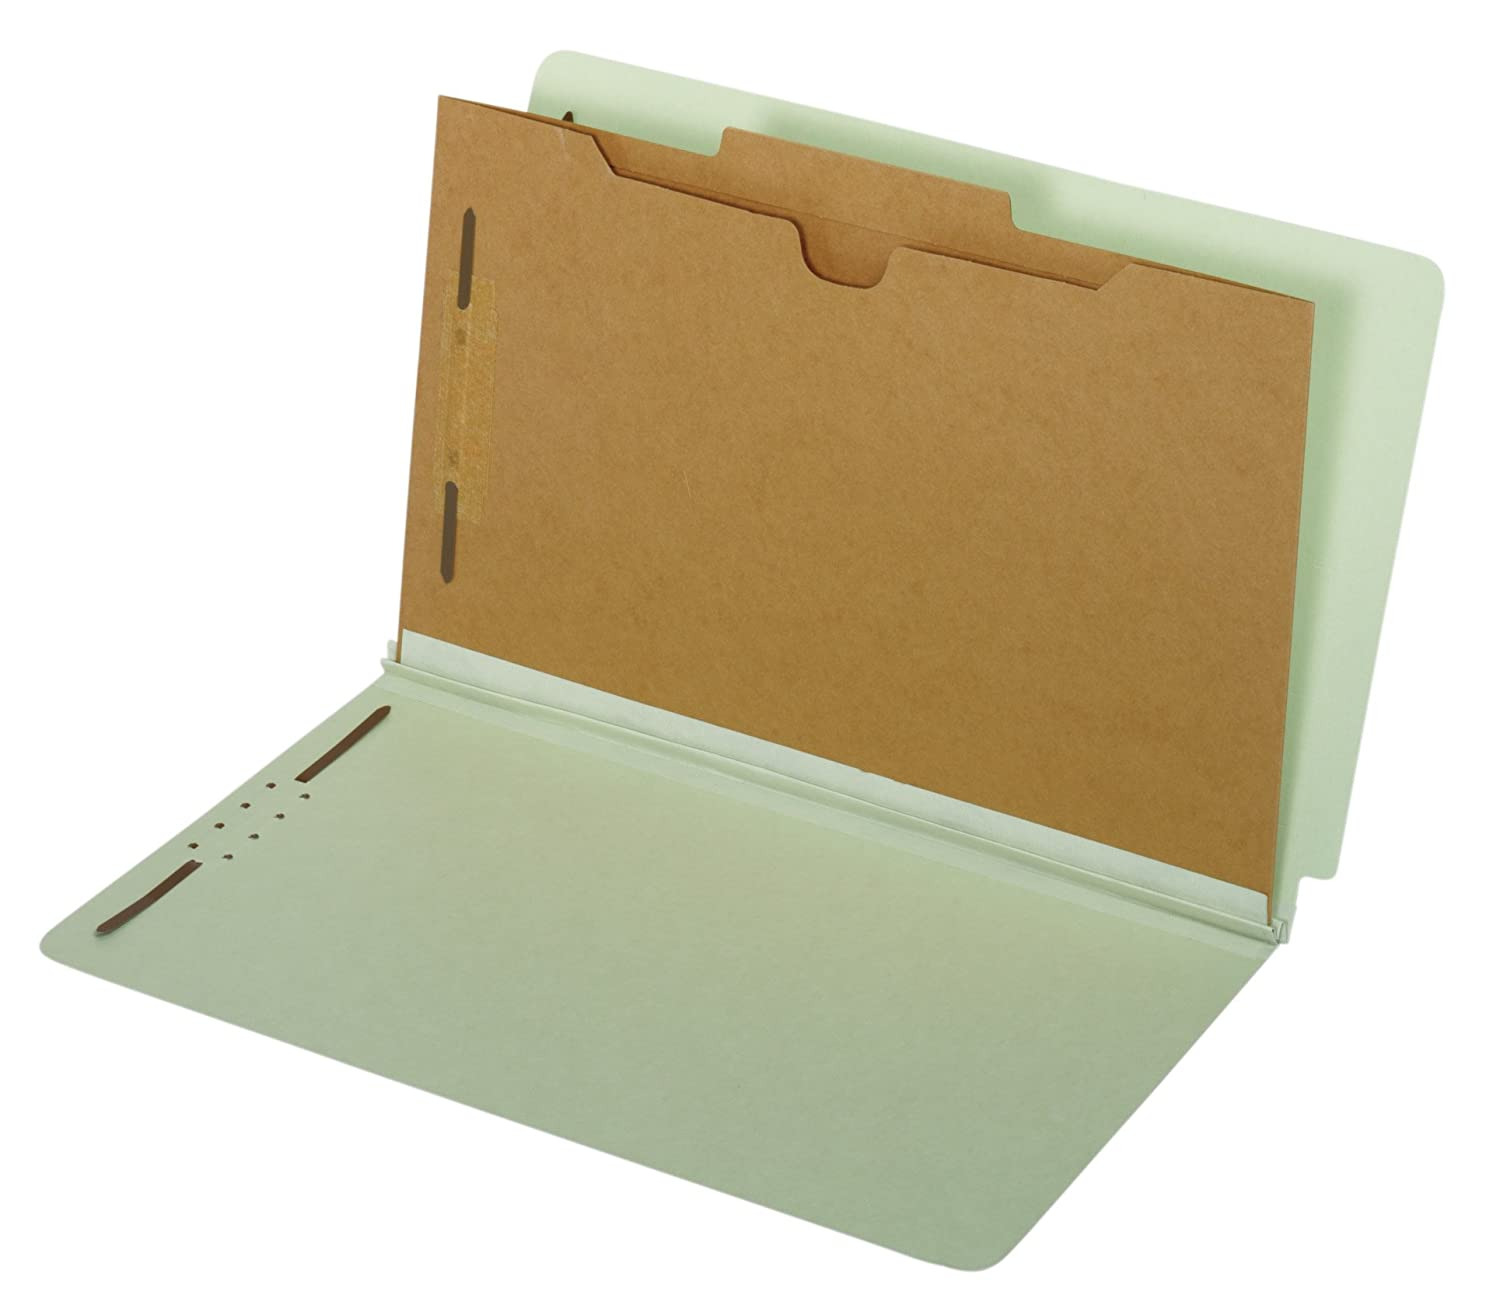 Globe-Weis End Tab Classification Folders, 1 Pocket Divider, 2-Inch Embedded Fasteners, Legal Size, Light Green, 10 Folders Per Box (39700)